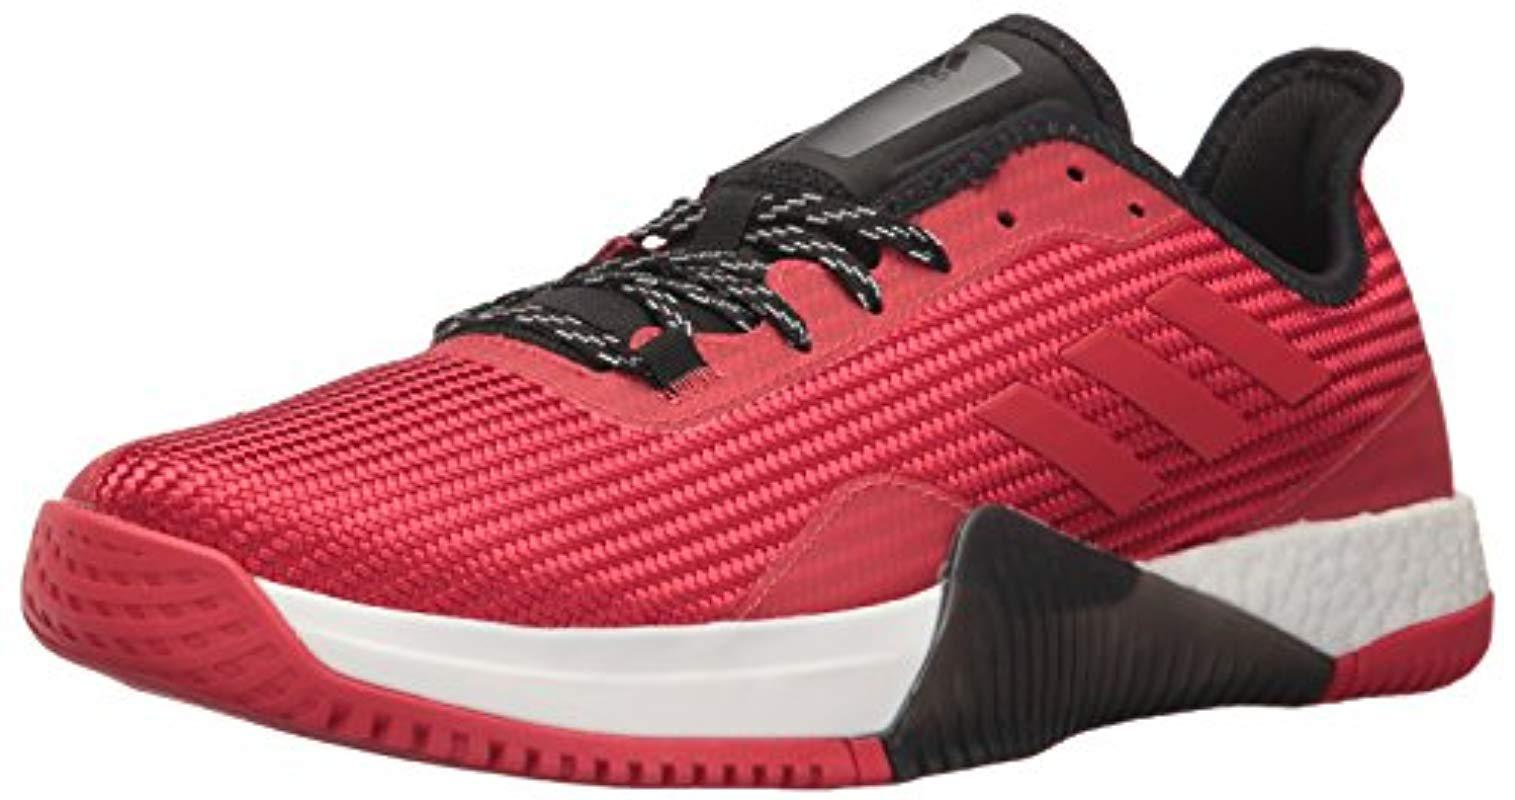 hot sale online 29a27 9ca96 Lyst - adidas Crazytrain Elite M Cross Trainer in Red for Me